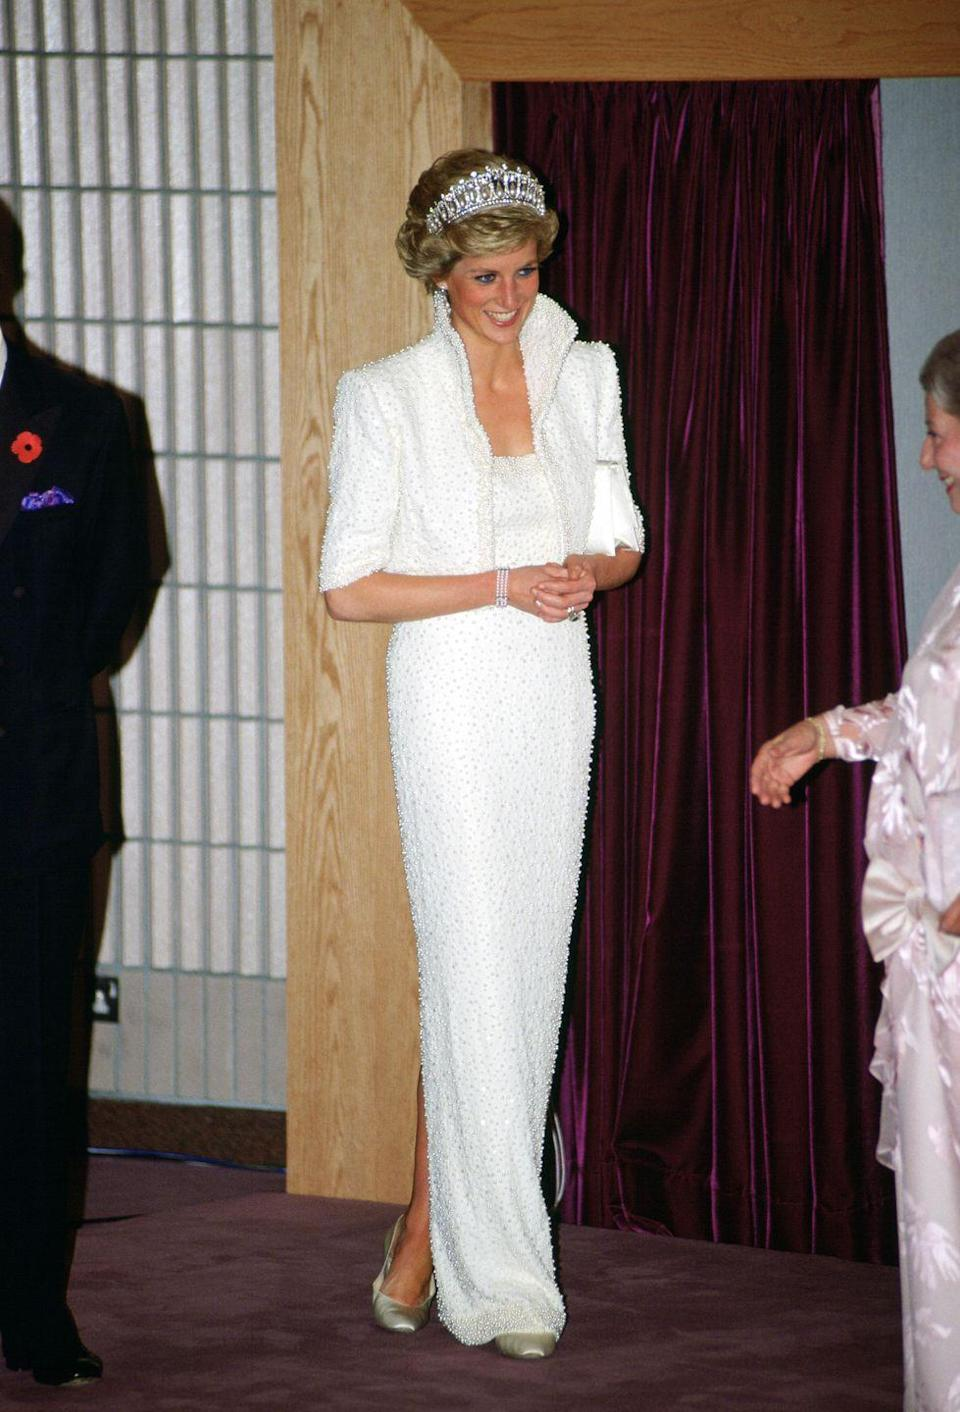 """<p>During a royal visit to Hong Kong, the Princess wore a white silk dress with pearl and sequined <a href=""""https://collections.vam.ac.uk/item/O130882/the-elvis-dress-state-evening-ensemble-walker-catherine/"""" rel=""""nofollow noopener"""" target=""""_blank"""" data-ylk=""""slk:detailing by Catherine Walker"""" class=""""link rapid-noclick-resp"""">detailing by Catherine Walker</a> that is now called """"The Elvis Dress"""" by many. </p>"""